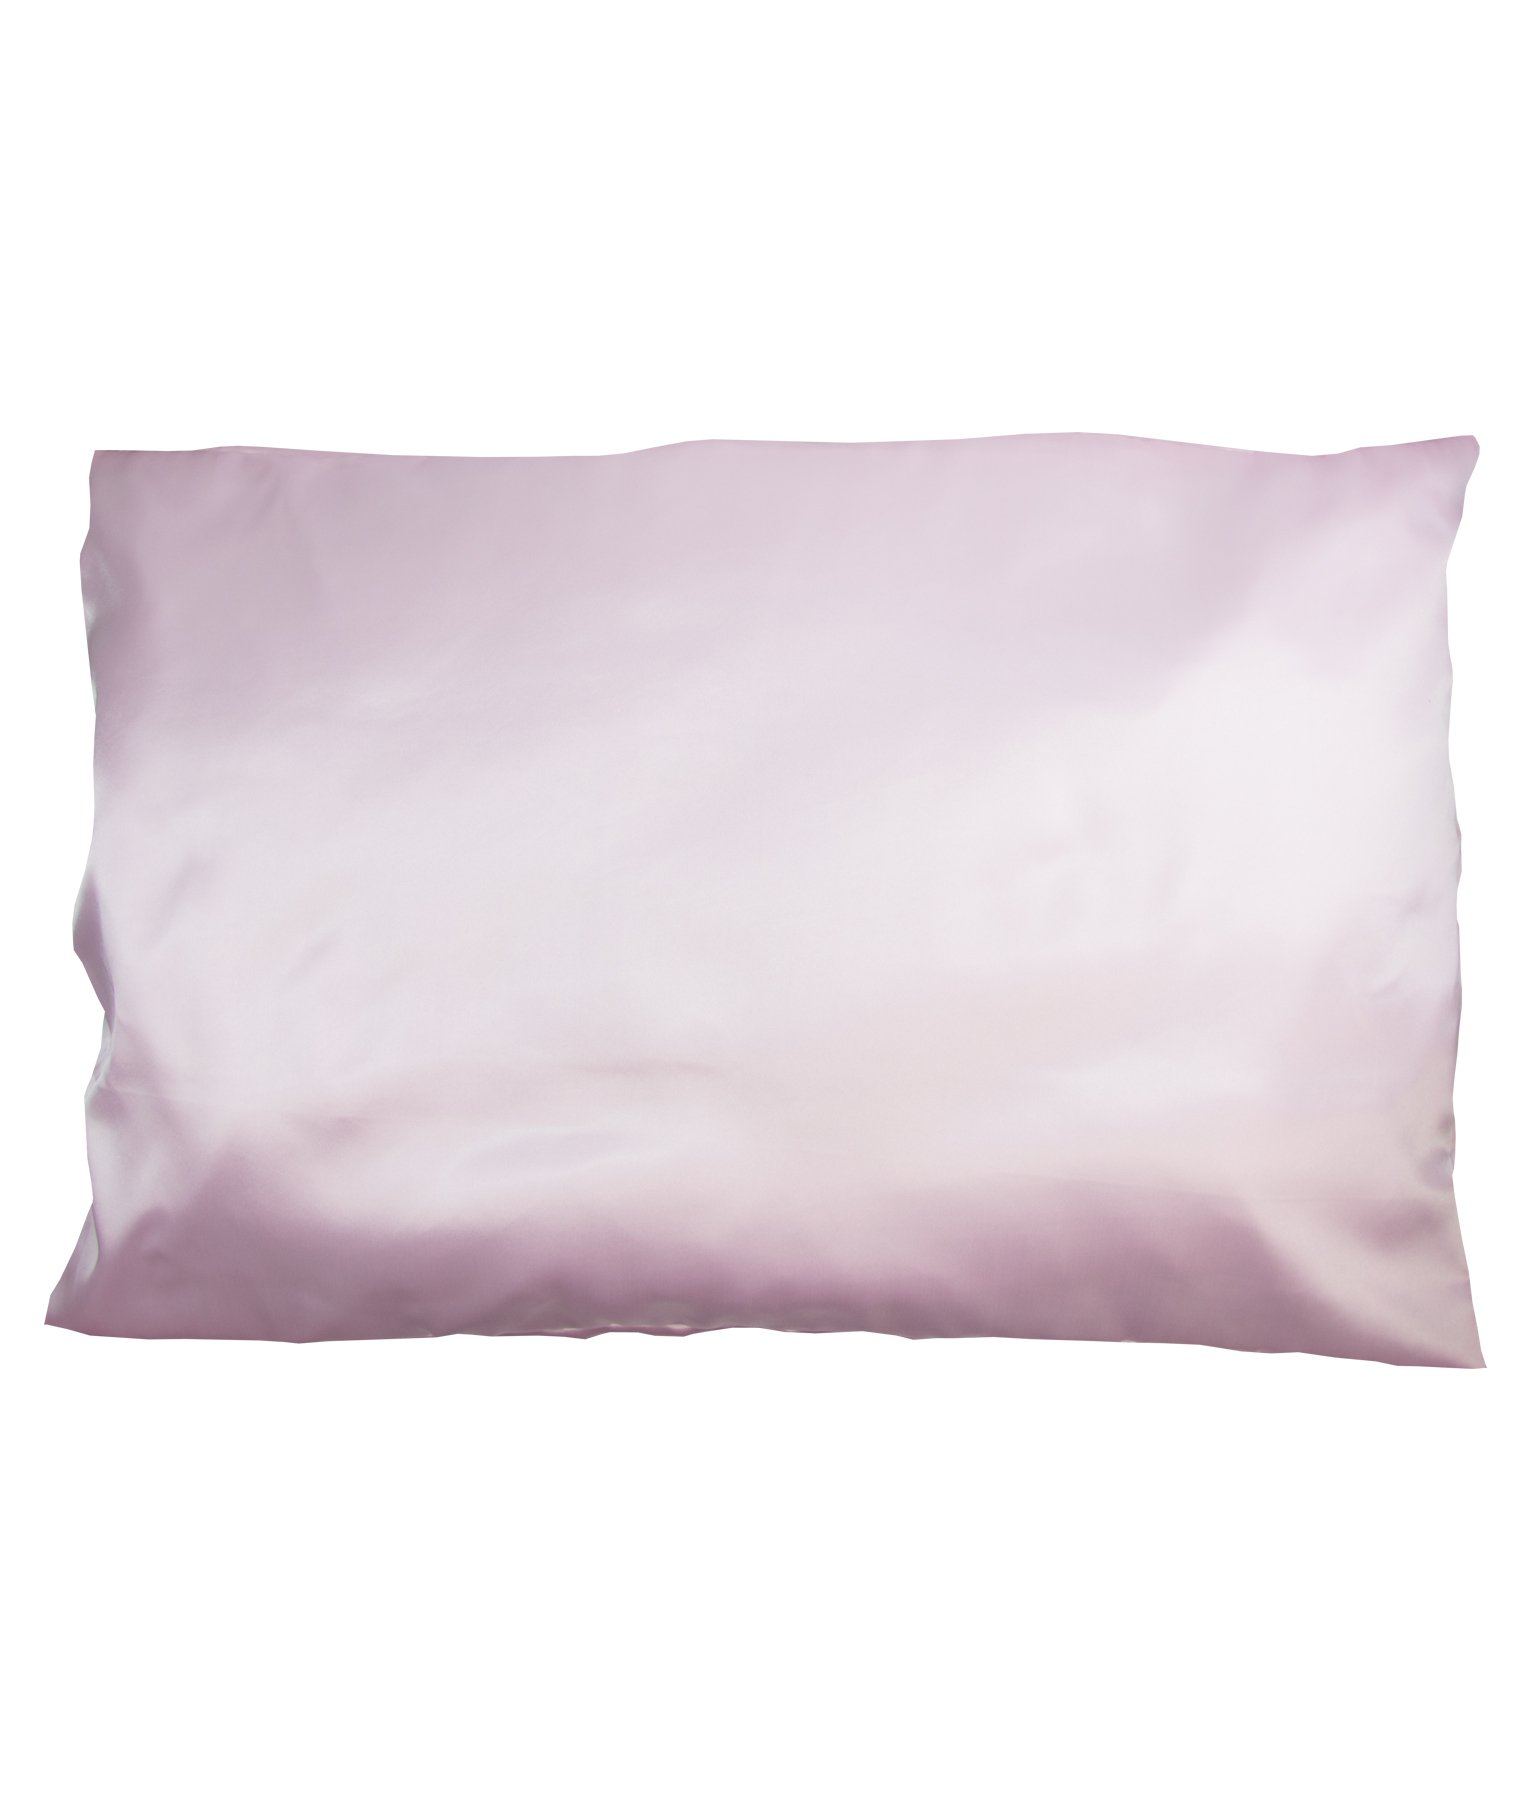 The Vintage cosmetics company Sweet Dreams Pillowcase